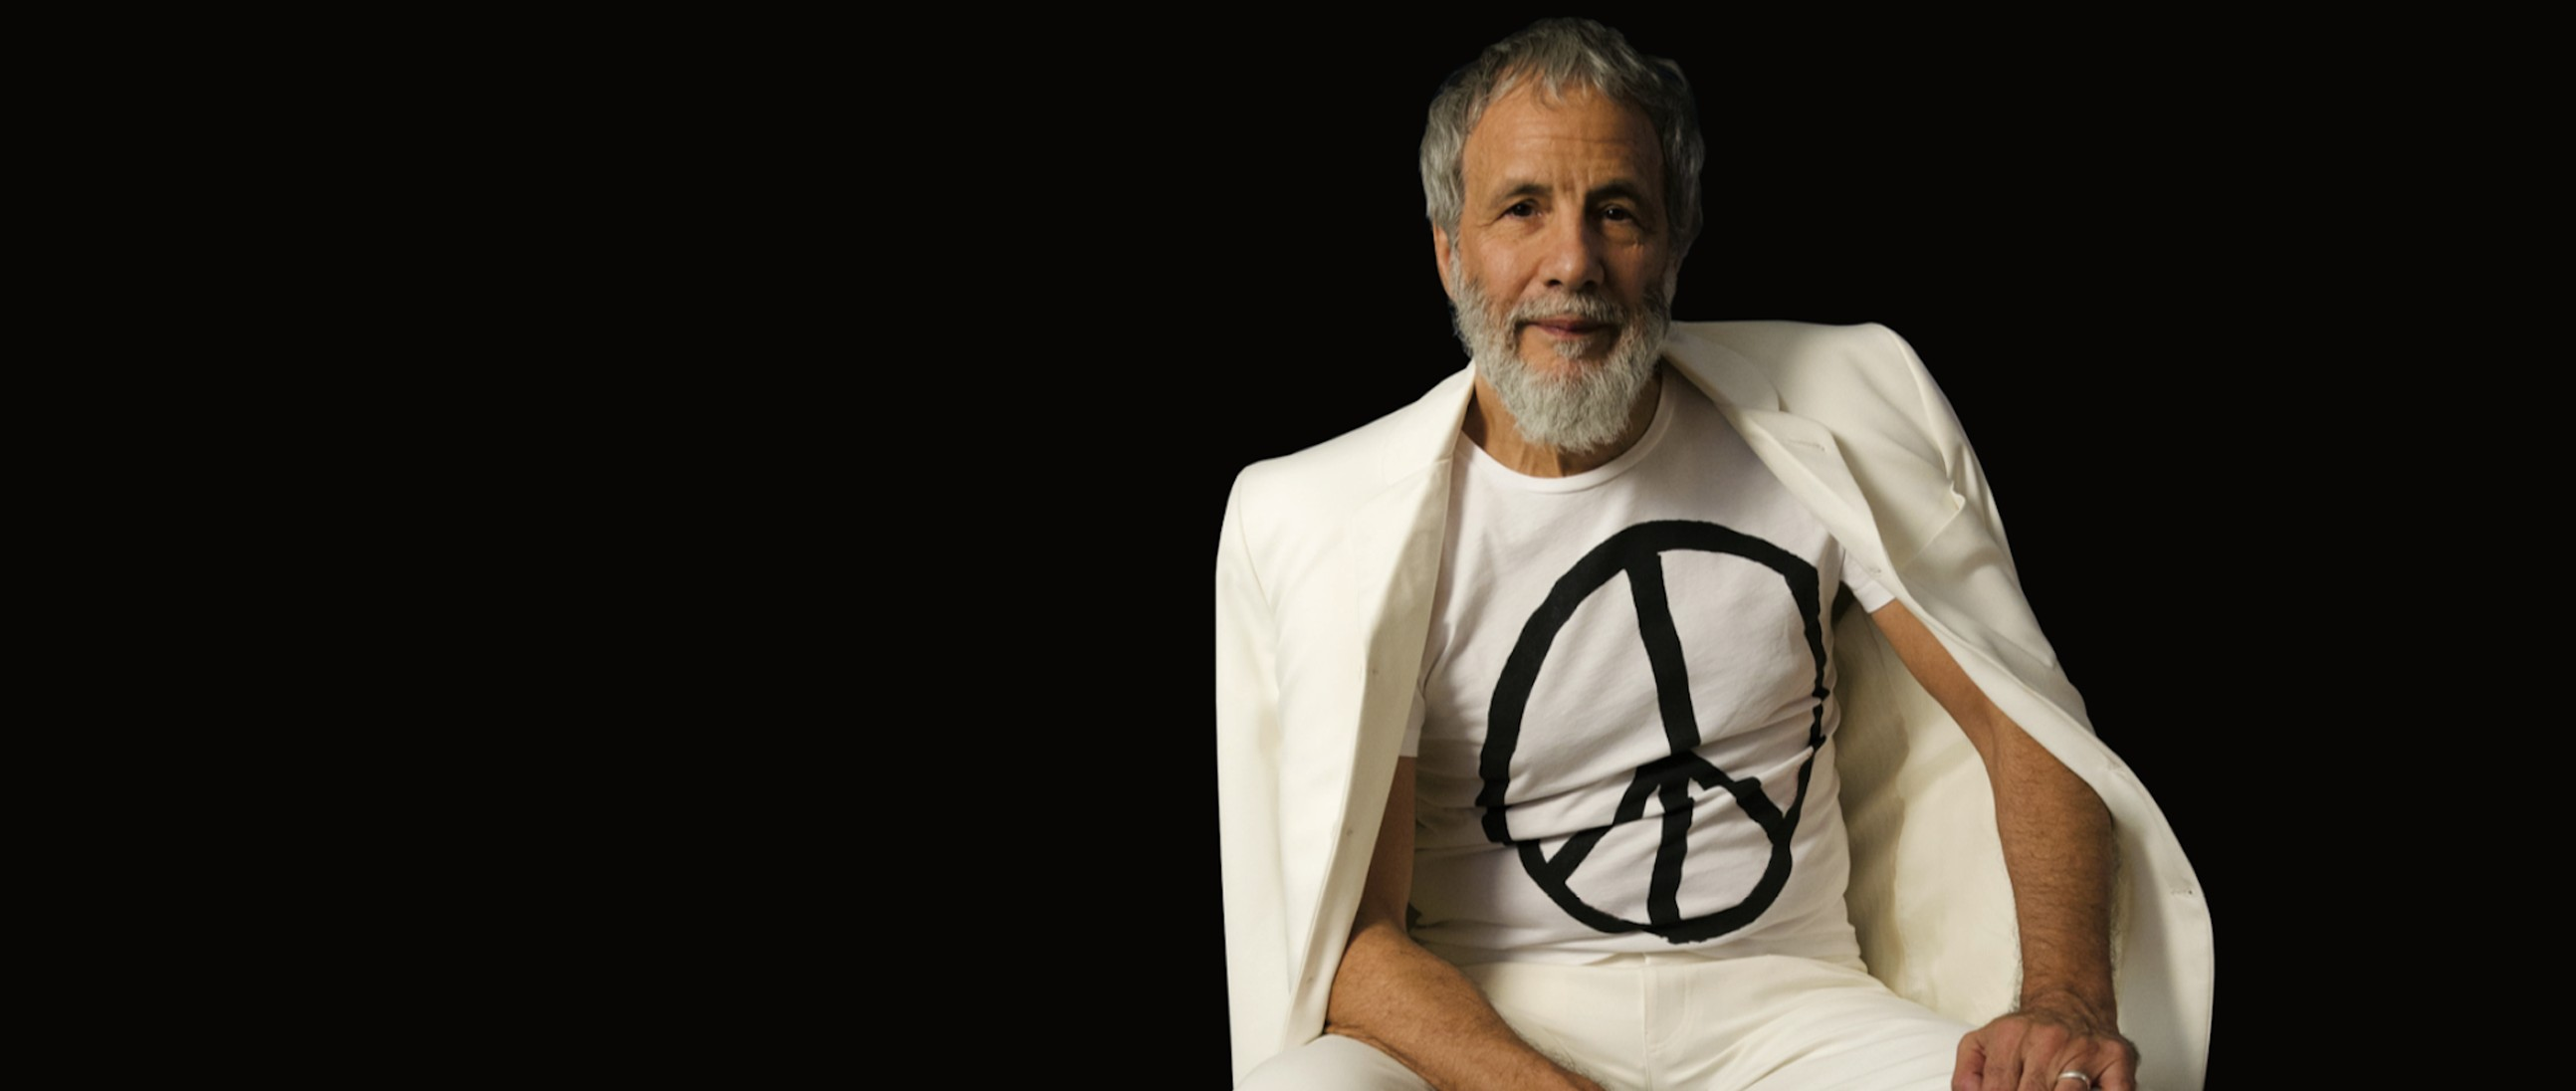 Yusuf's Message of Peace